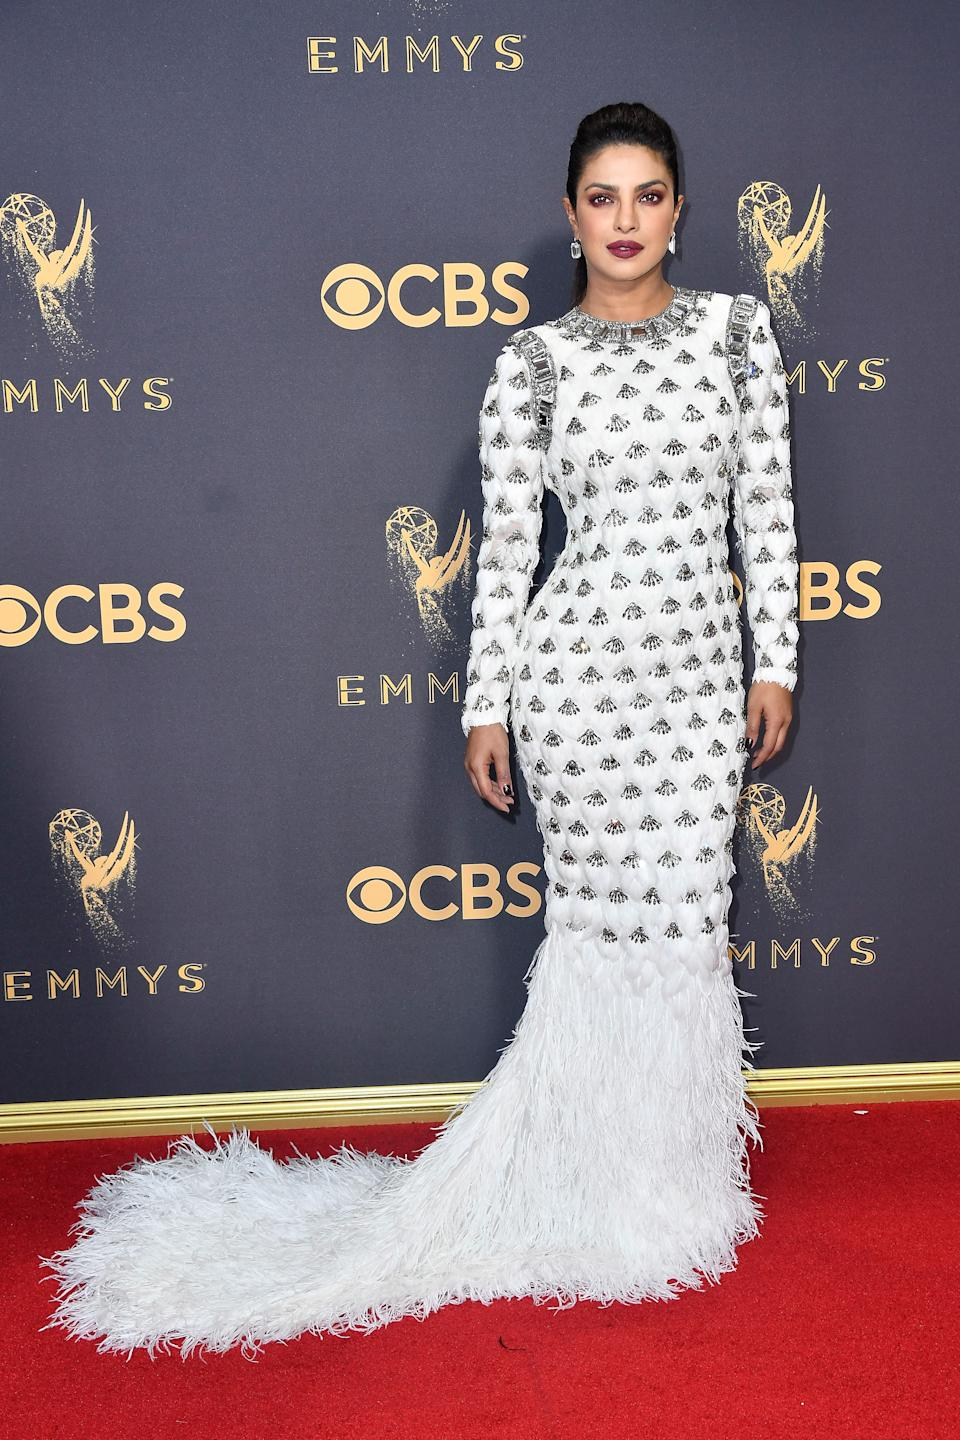 <p>Priyanka Chopra suffered a rare fashion mis-step at the 2017 Emmy Awards in a long-sleeve, feather-duster inspired look by Balmain. (Image via Getty Images)</p>